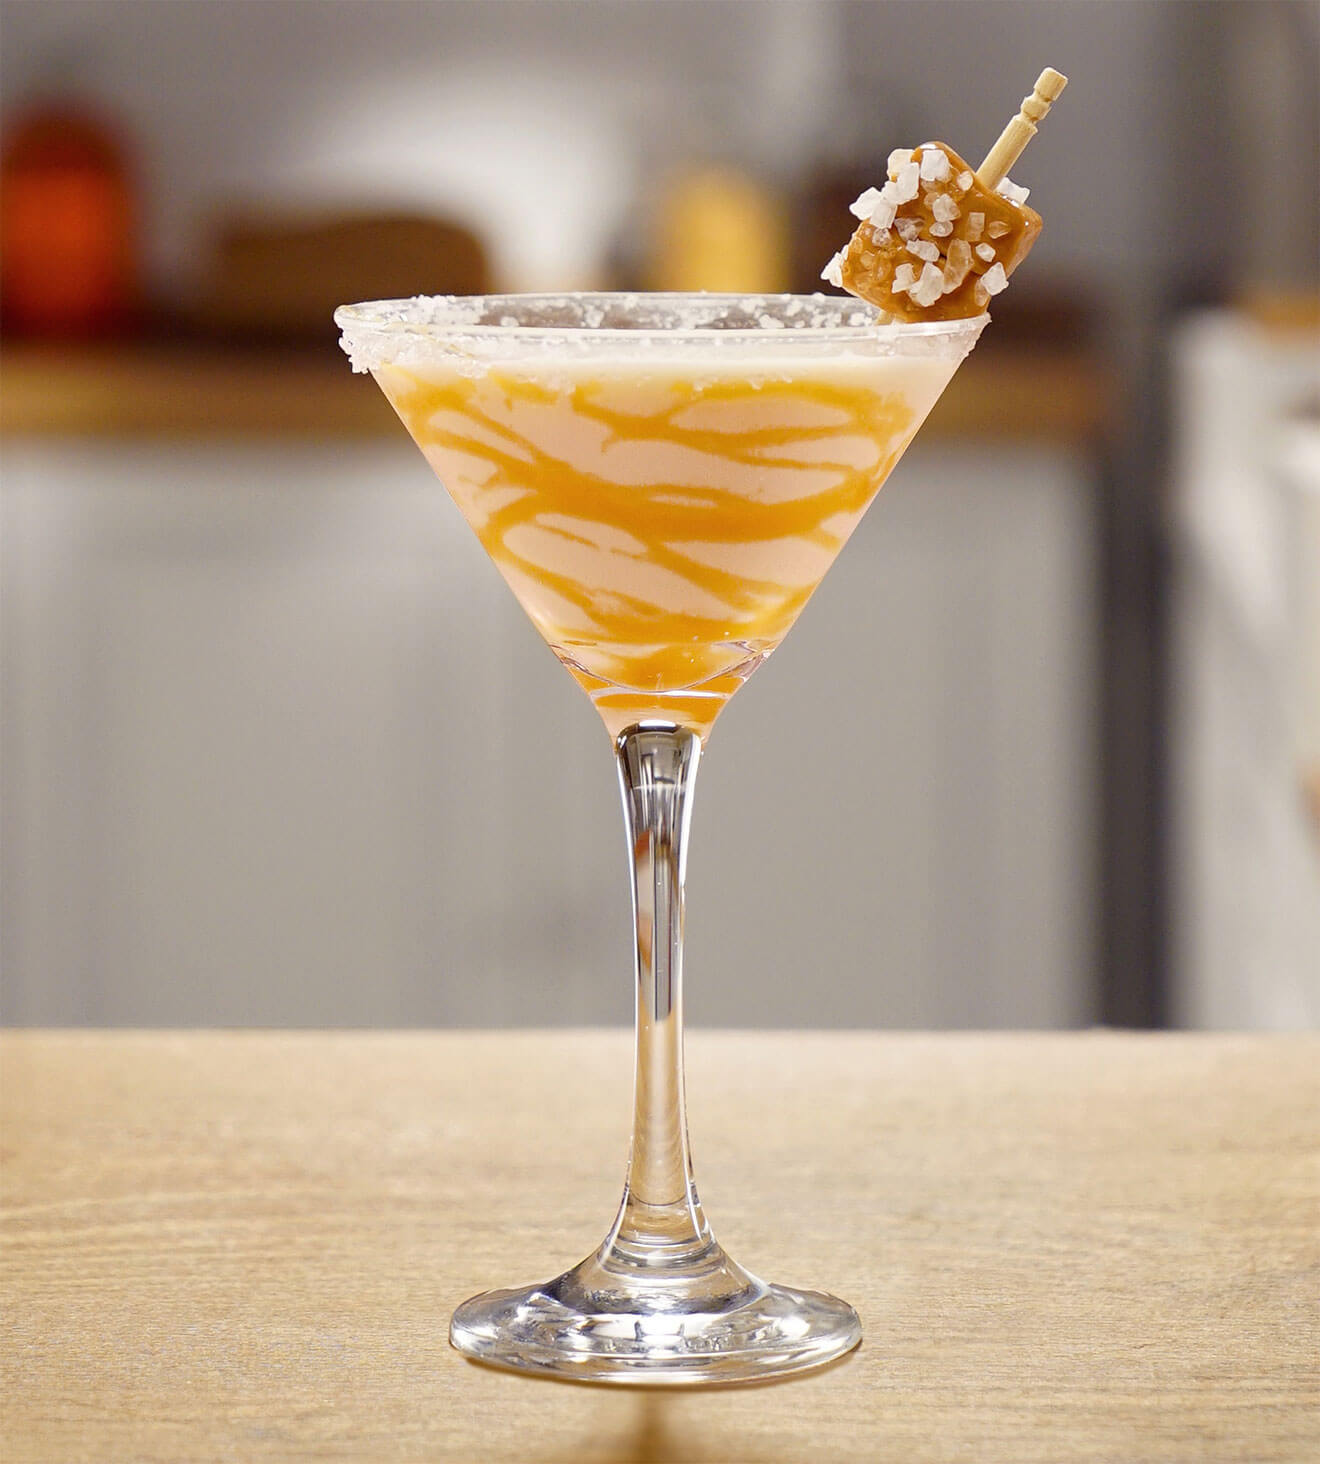 RumChata Salted Caramel Martini, cocktail with sweet garnish